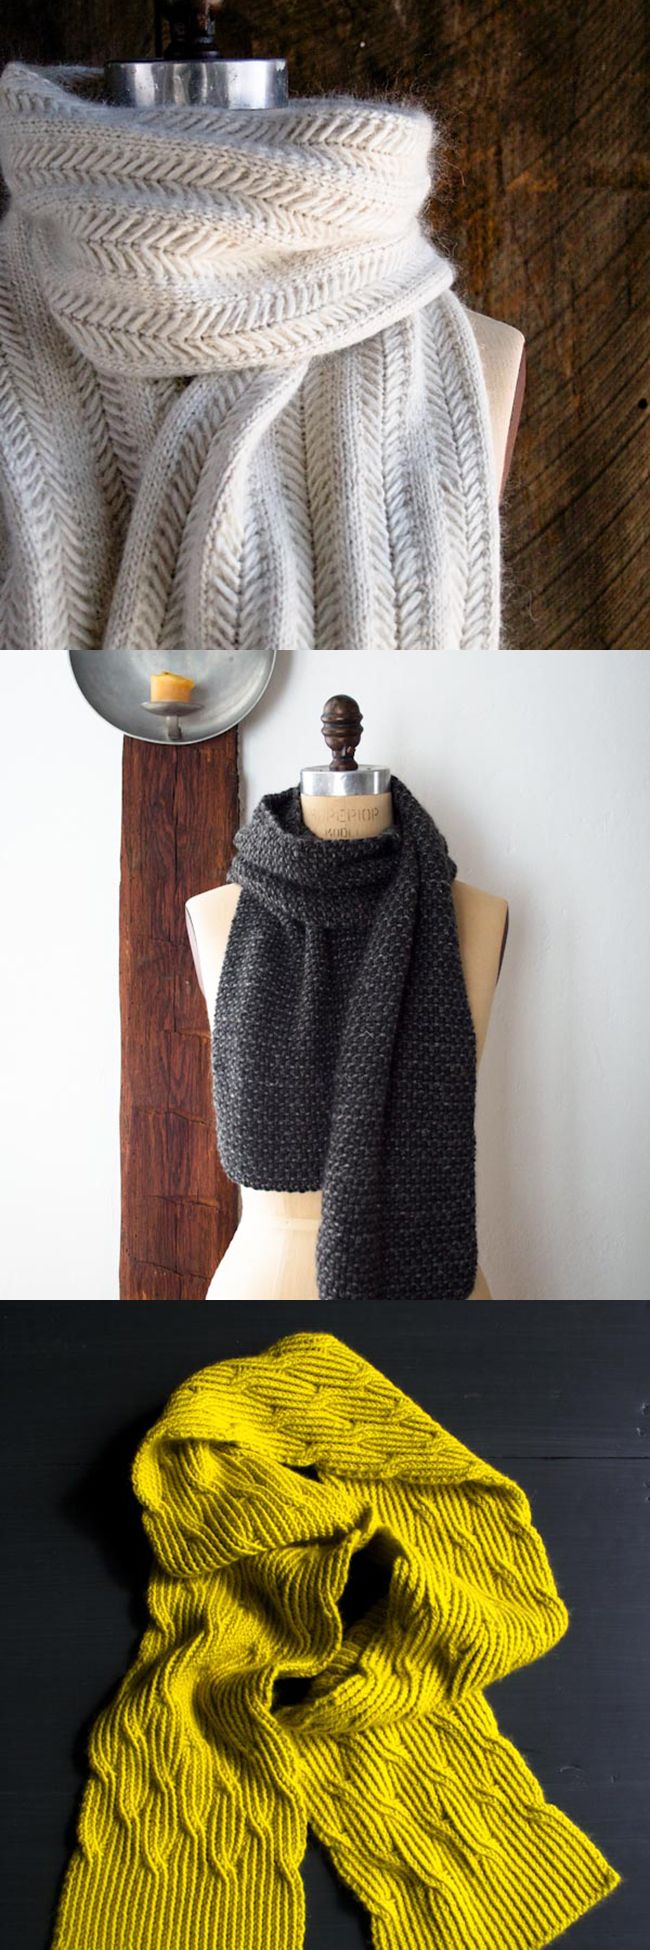 New Favorites: the Purl Bee three | Purl bee, Knitting patterns and Bees